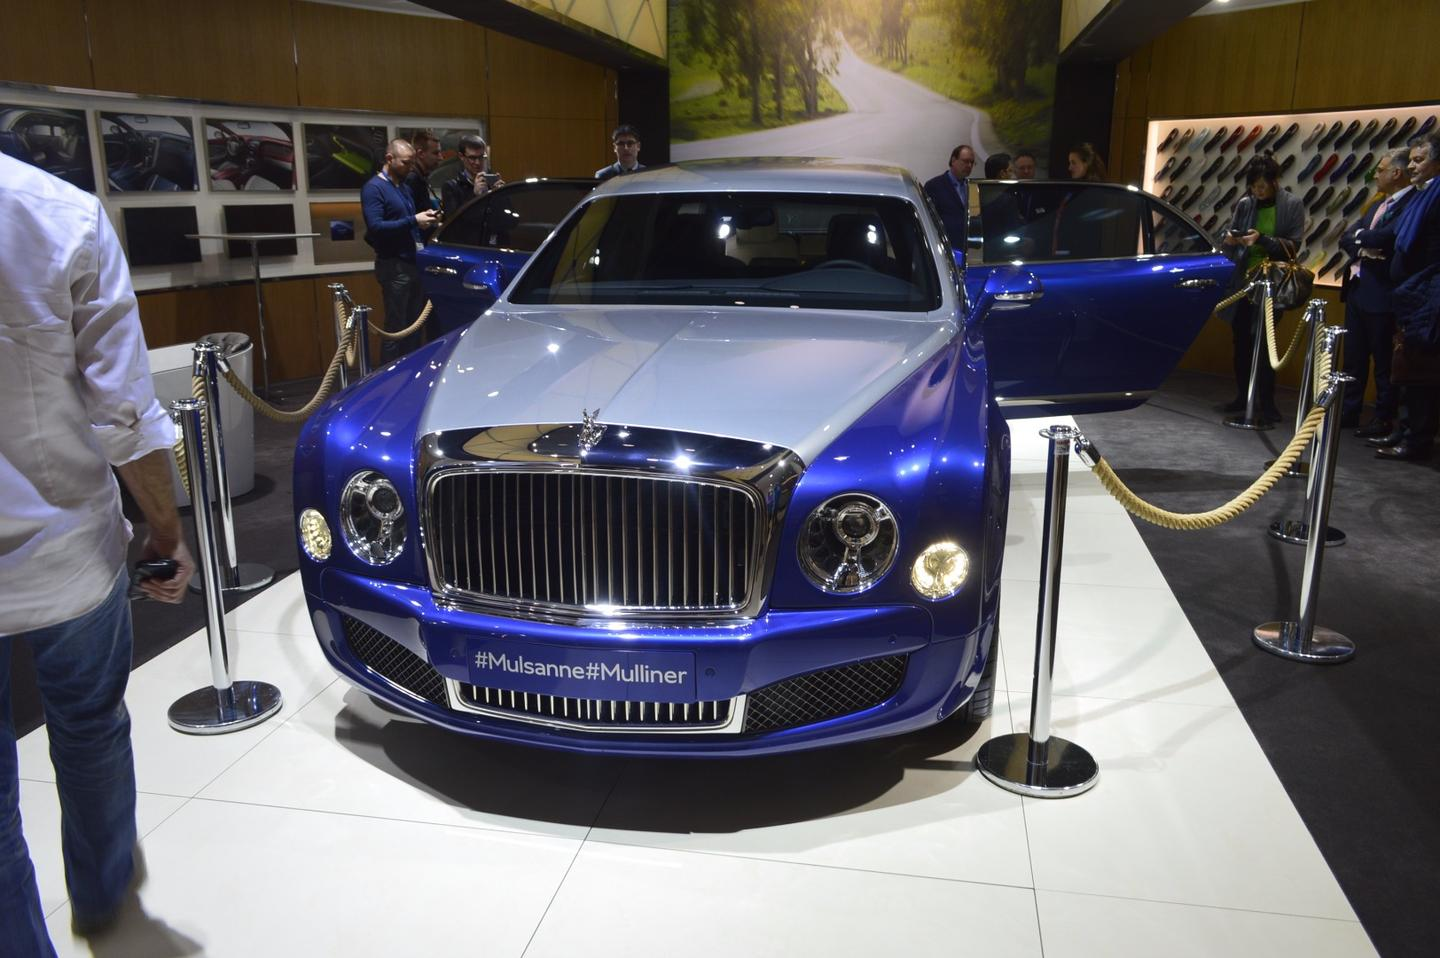 An ultra-luxury, bespoke Bentley Mulsanne Grand Limousine by Mulliner can be privately commissioned and tailored to need from Bentley's private coachbuilder